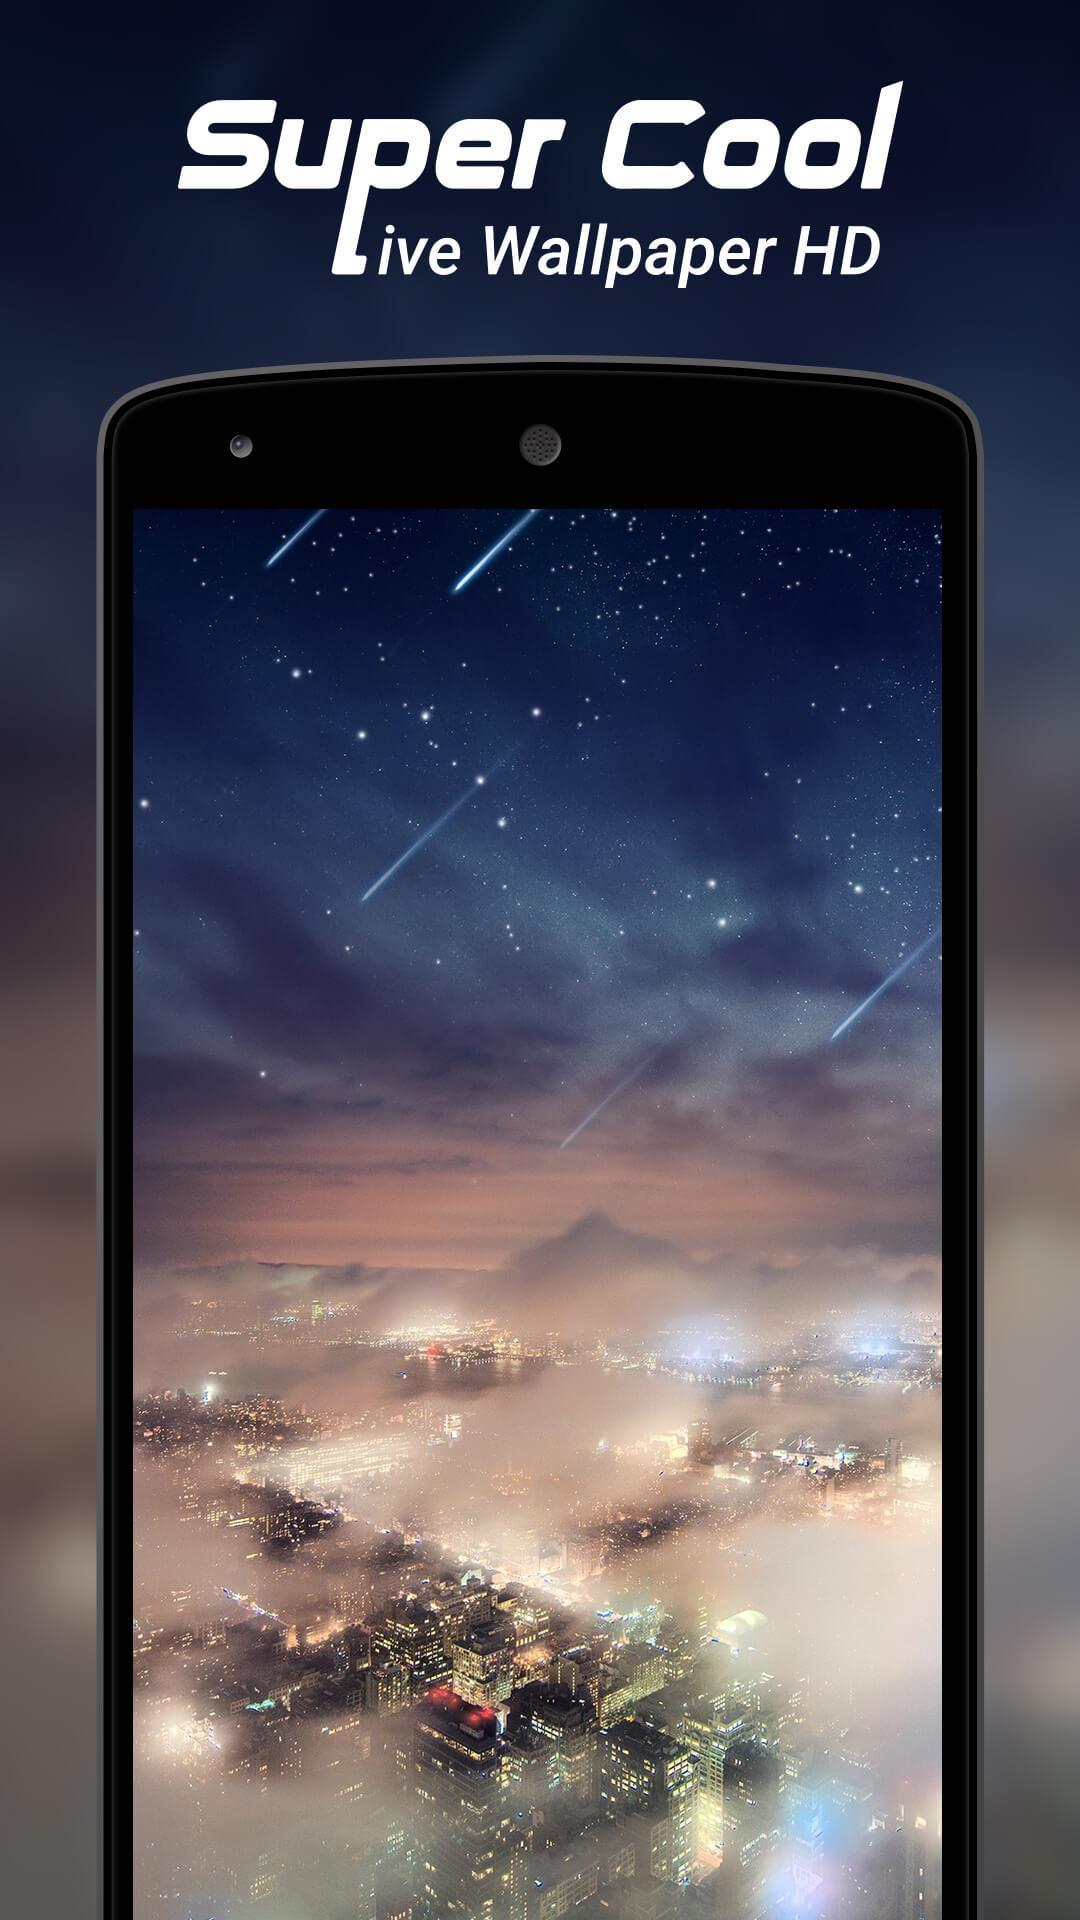 Super Cool Live Wallpaper HD for Android - APK Download